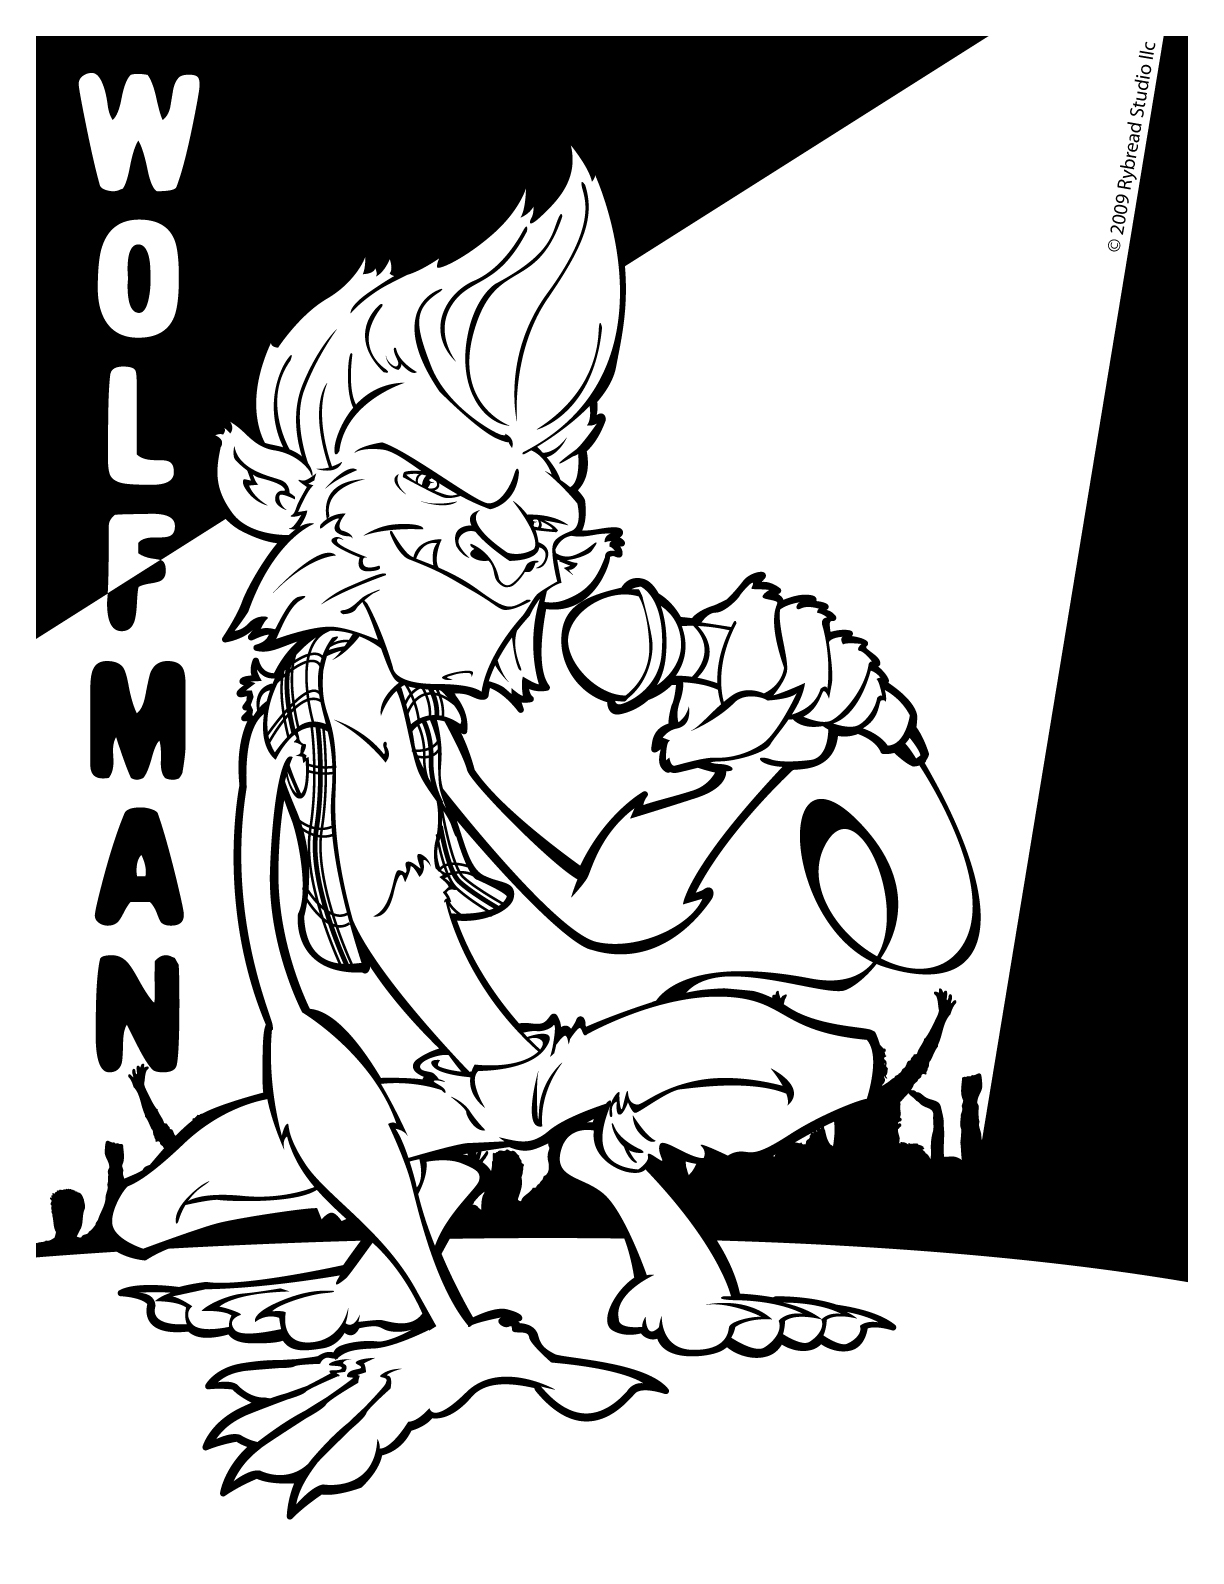 Drawn wolfman coloring page Page Doodle Coloring Masters Coloring